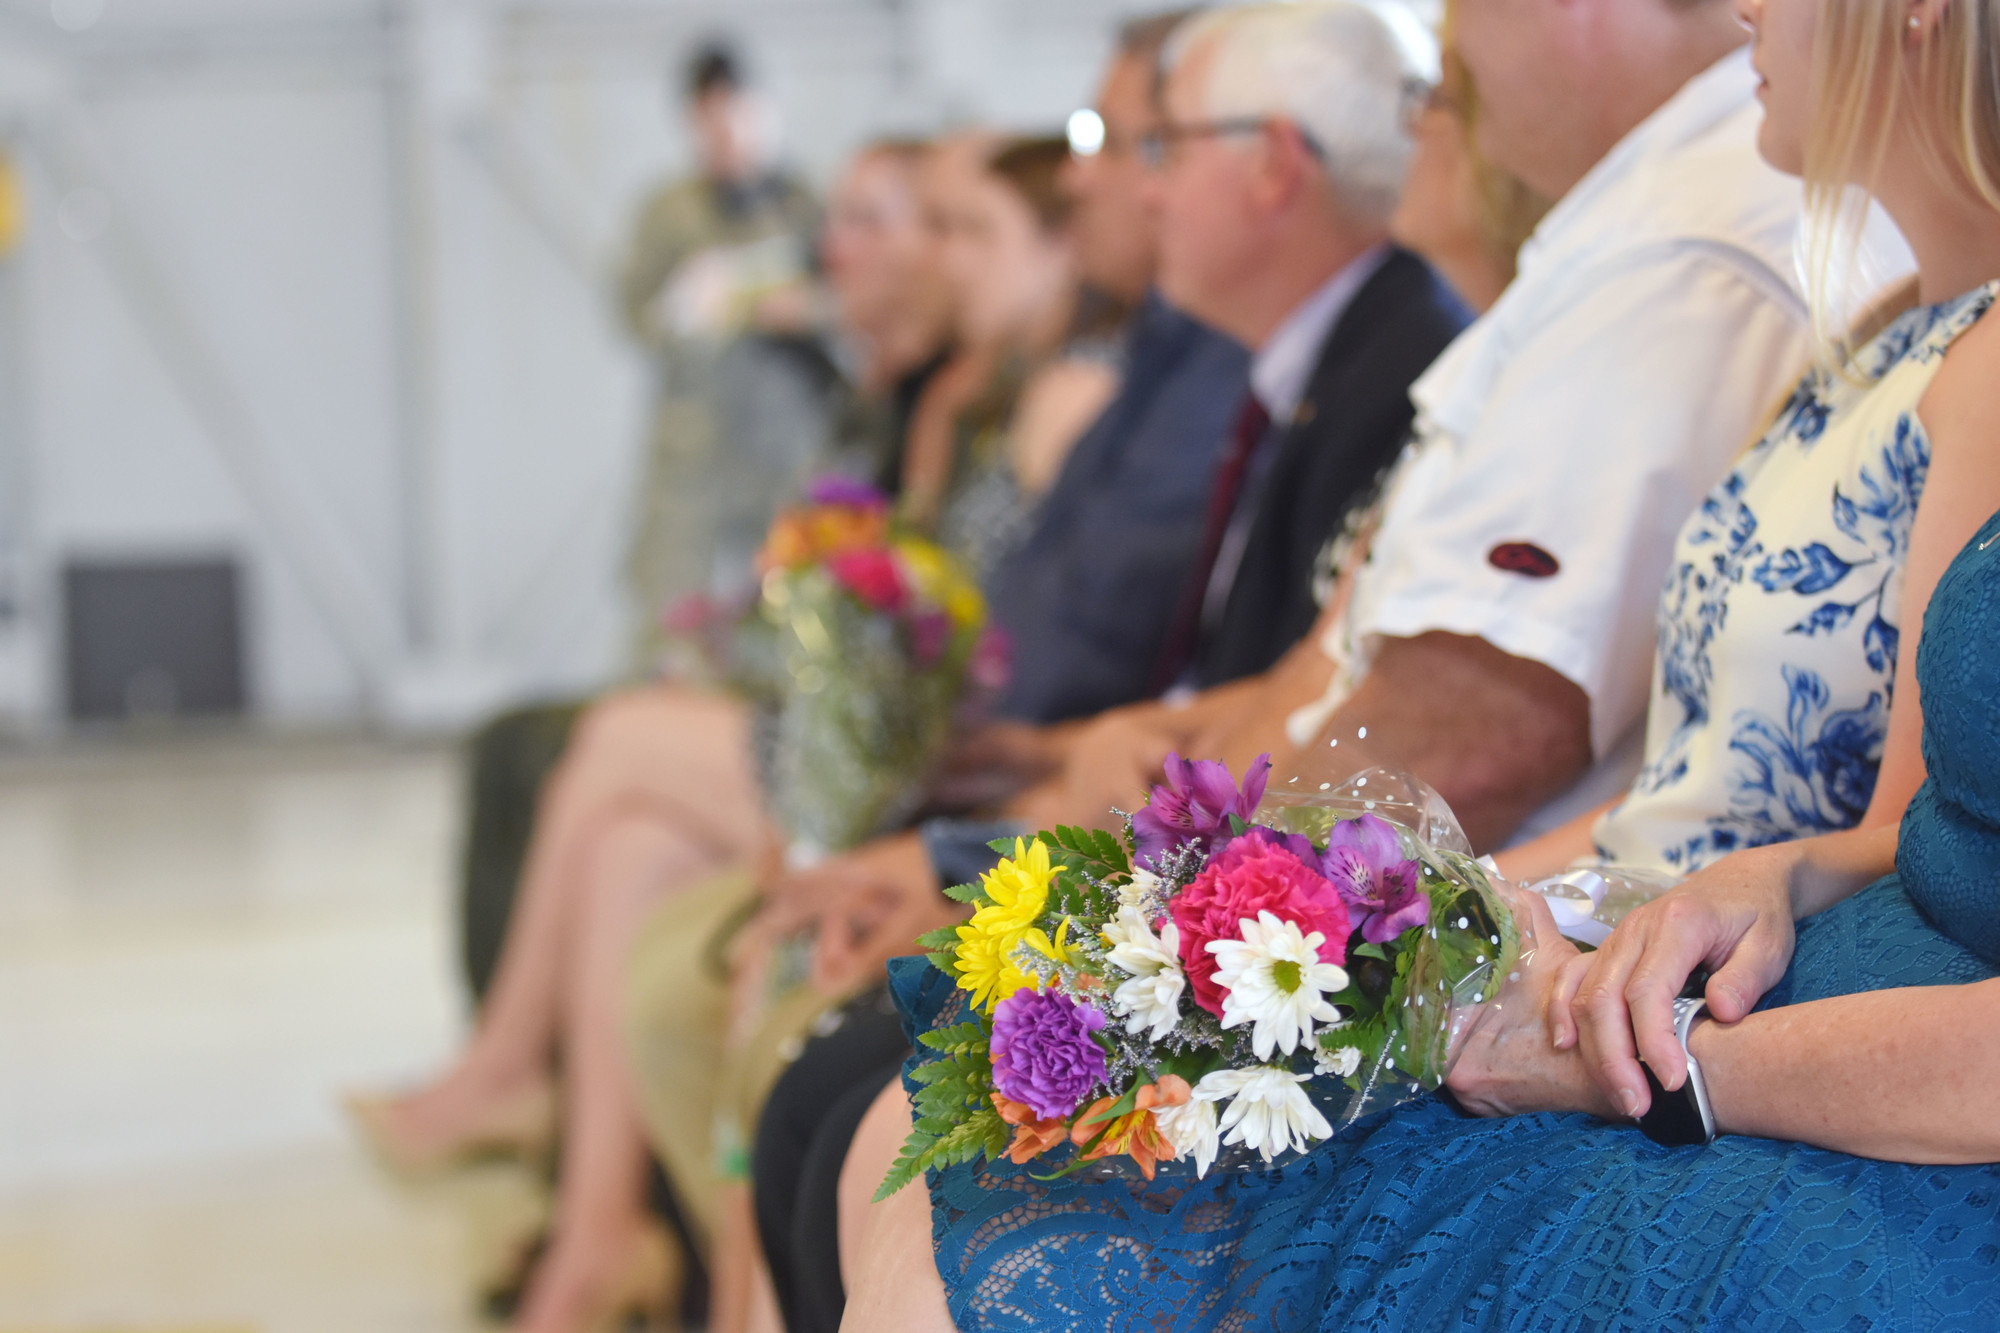 Capts. John Nygard and Salvador Cruz gave flowers to their wives and mothers and the mothers of the two airmen killed during the mission where they saved 88 airmen, which resulted in the captains receiving a DFC Medal.